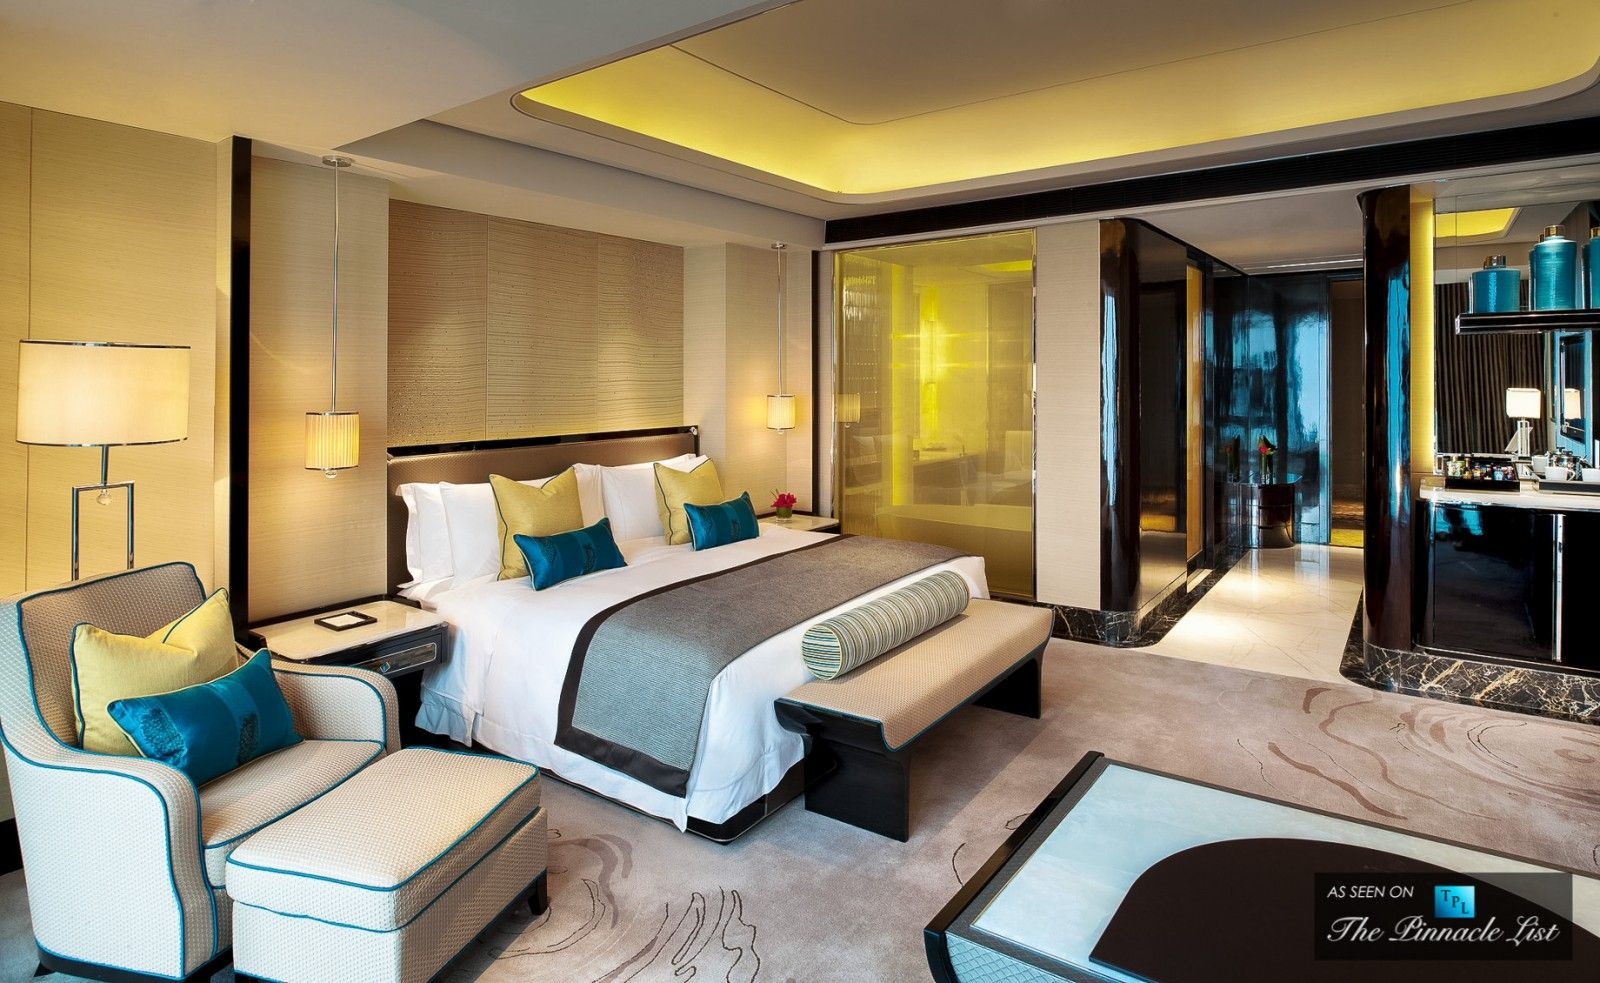 Comfort abounds in this hotel suite st regis luxury for Luxury hotel accommodation